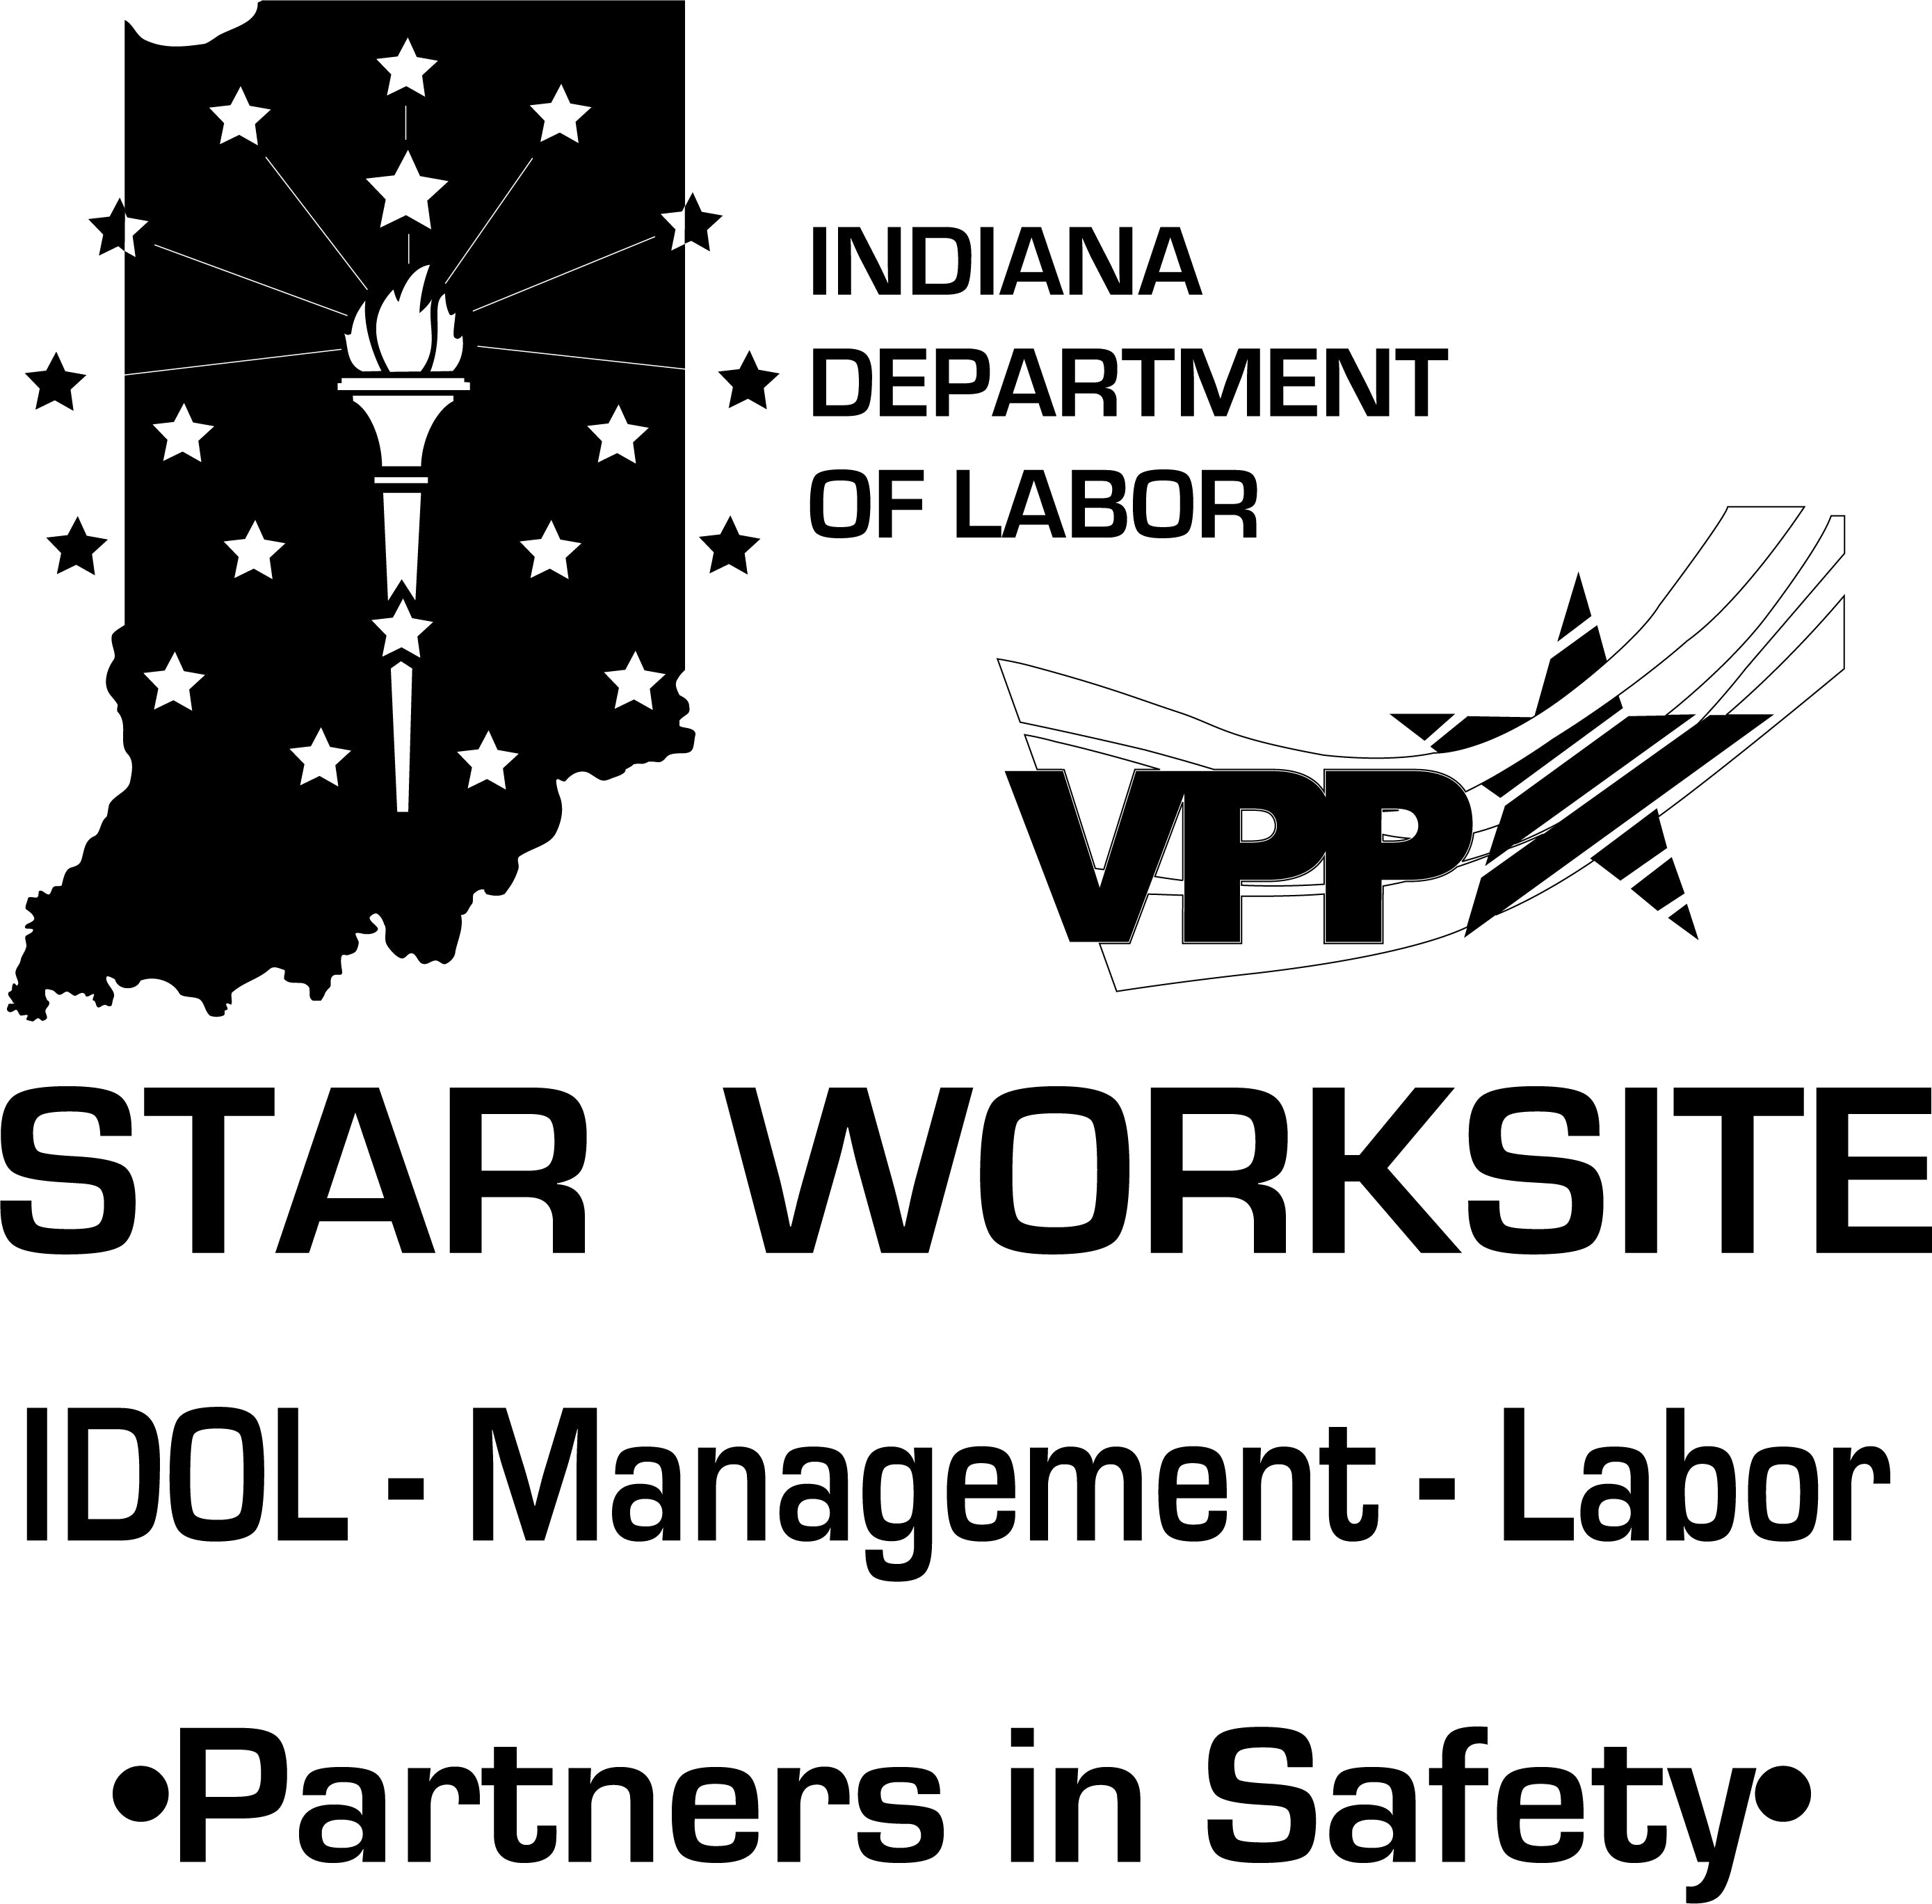 21V1 Indiana Star Worksite